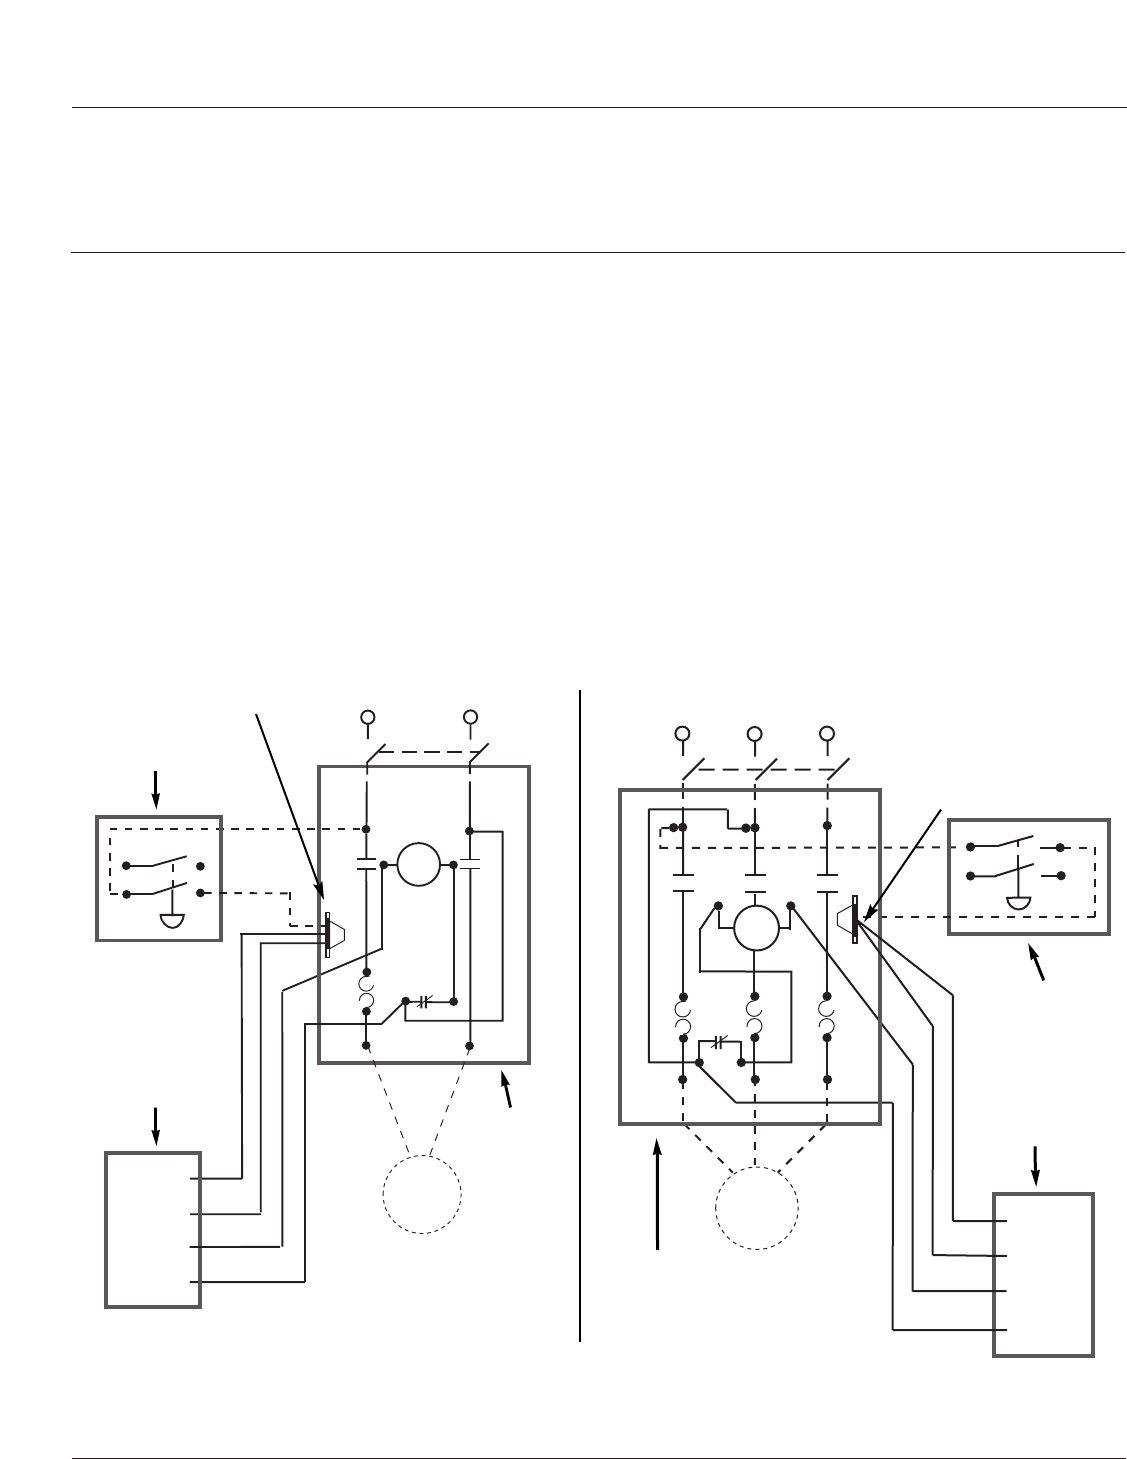 Wiring Diagram: 30 Campbell Hausfeld Air Compressor Wiring